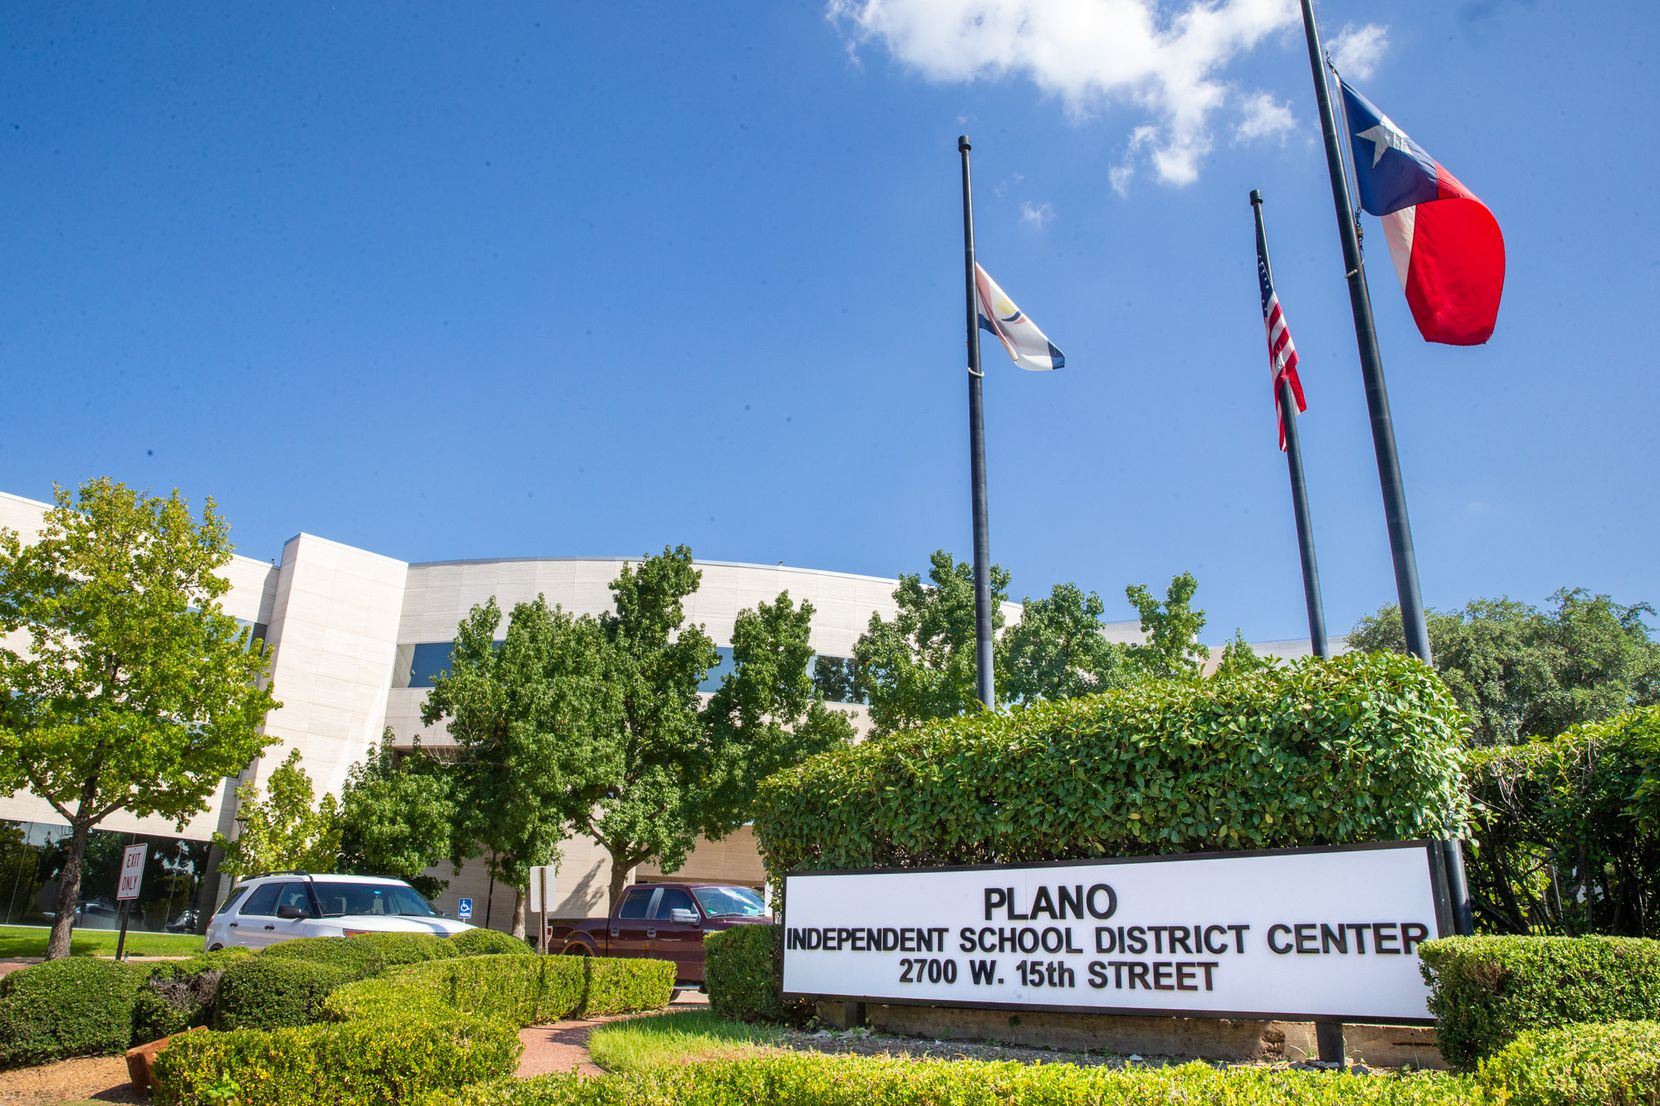 Plano Isd Calendar 2022.Plano Isd Planning For Full Return To In Person Classes In 2021 22 School Year